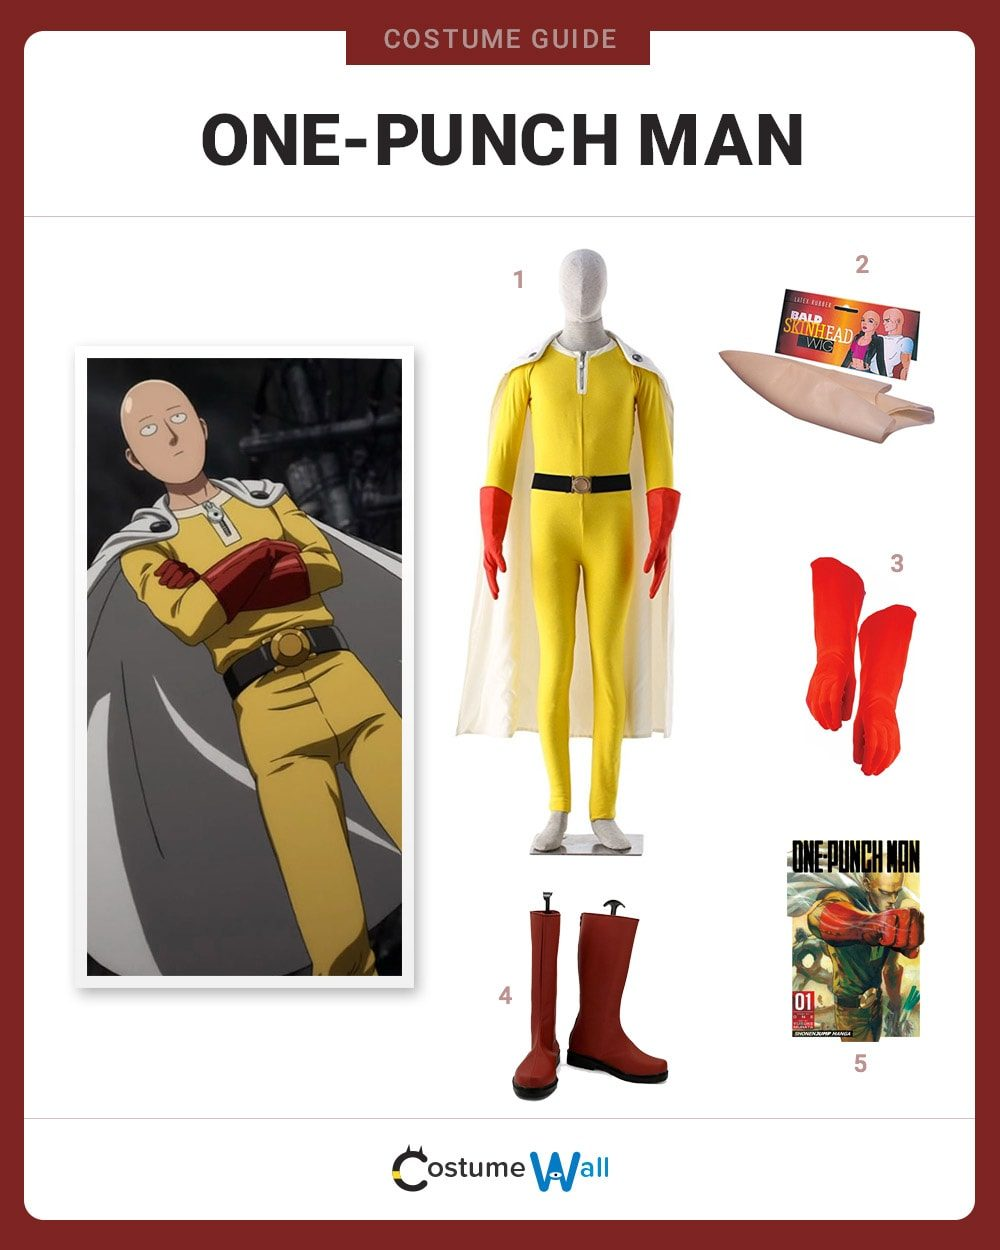 One-Punch Man Costume